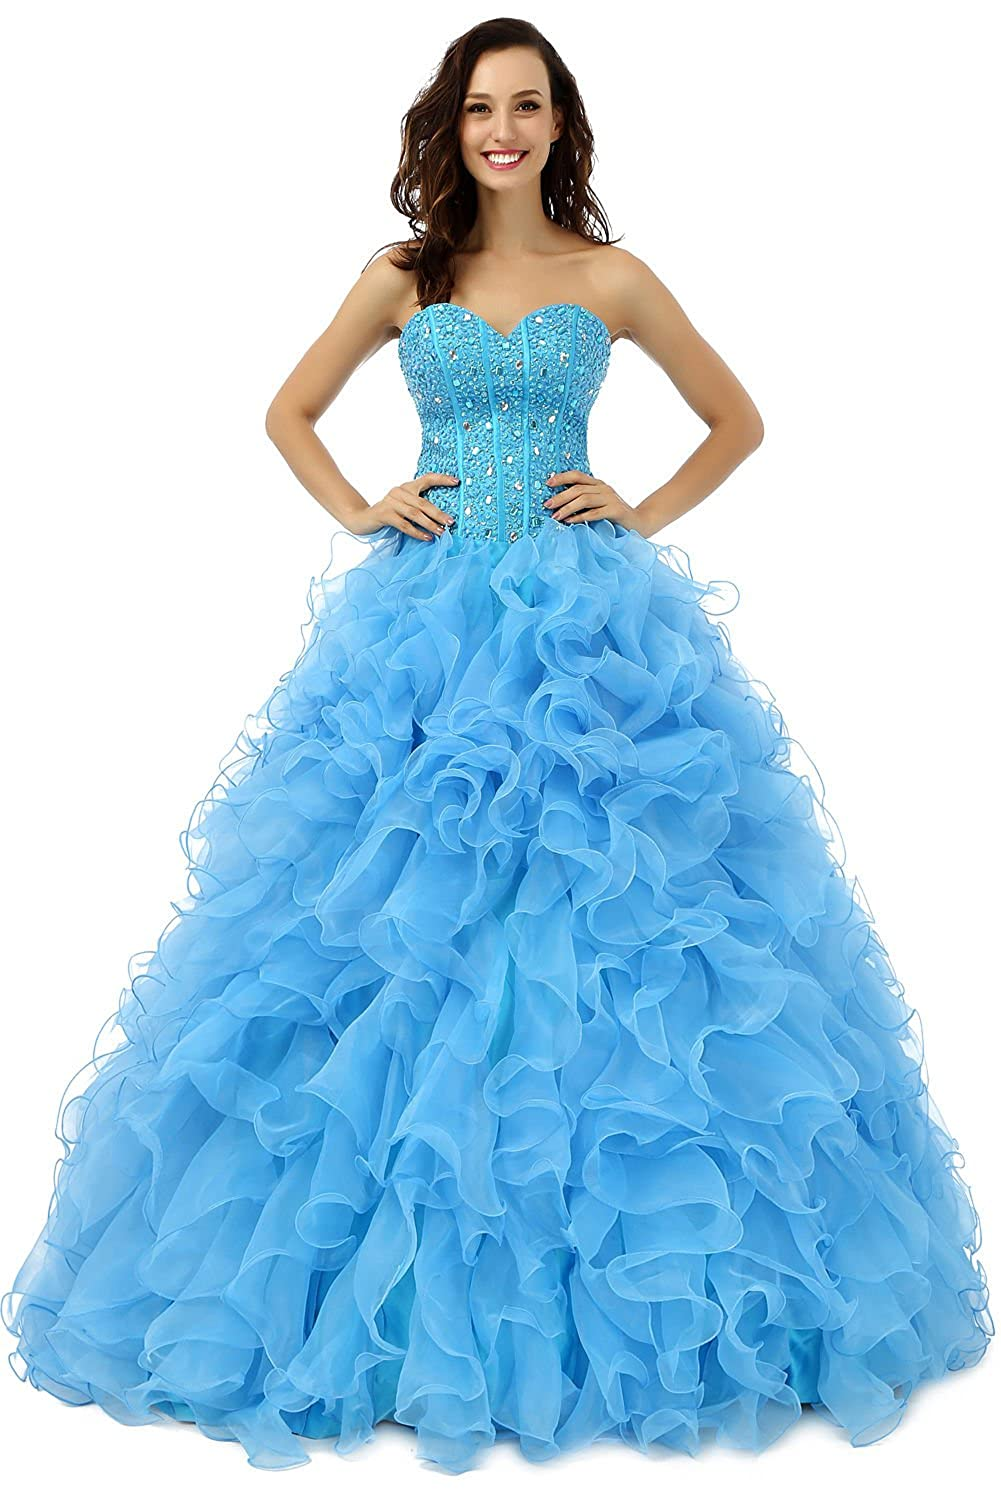 Ikerenwedding Women's Sweetheart Ruffles Beaded Long Organza Ball Gown Quinceanera Dress